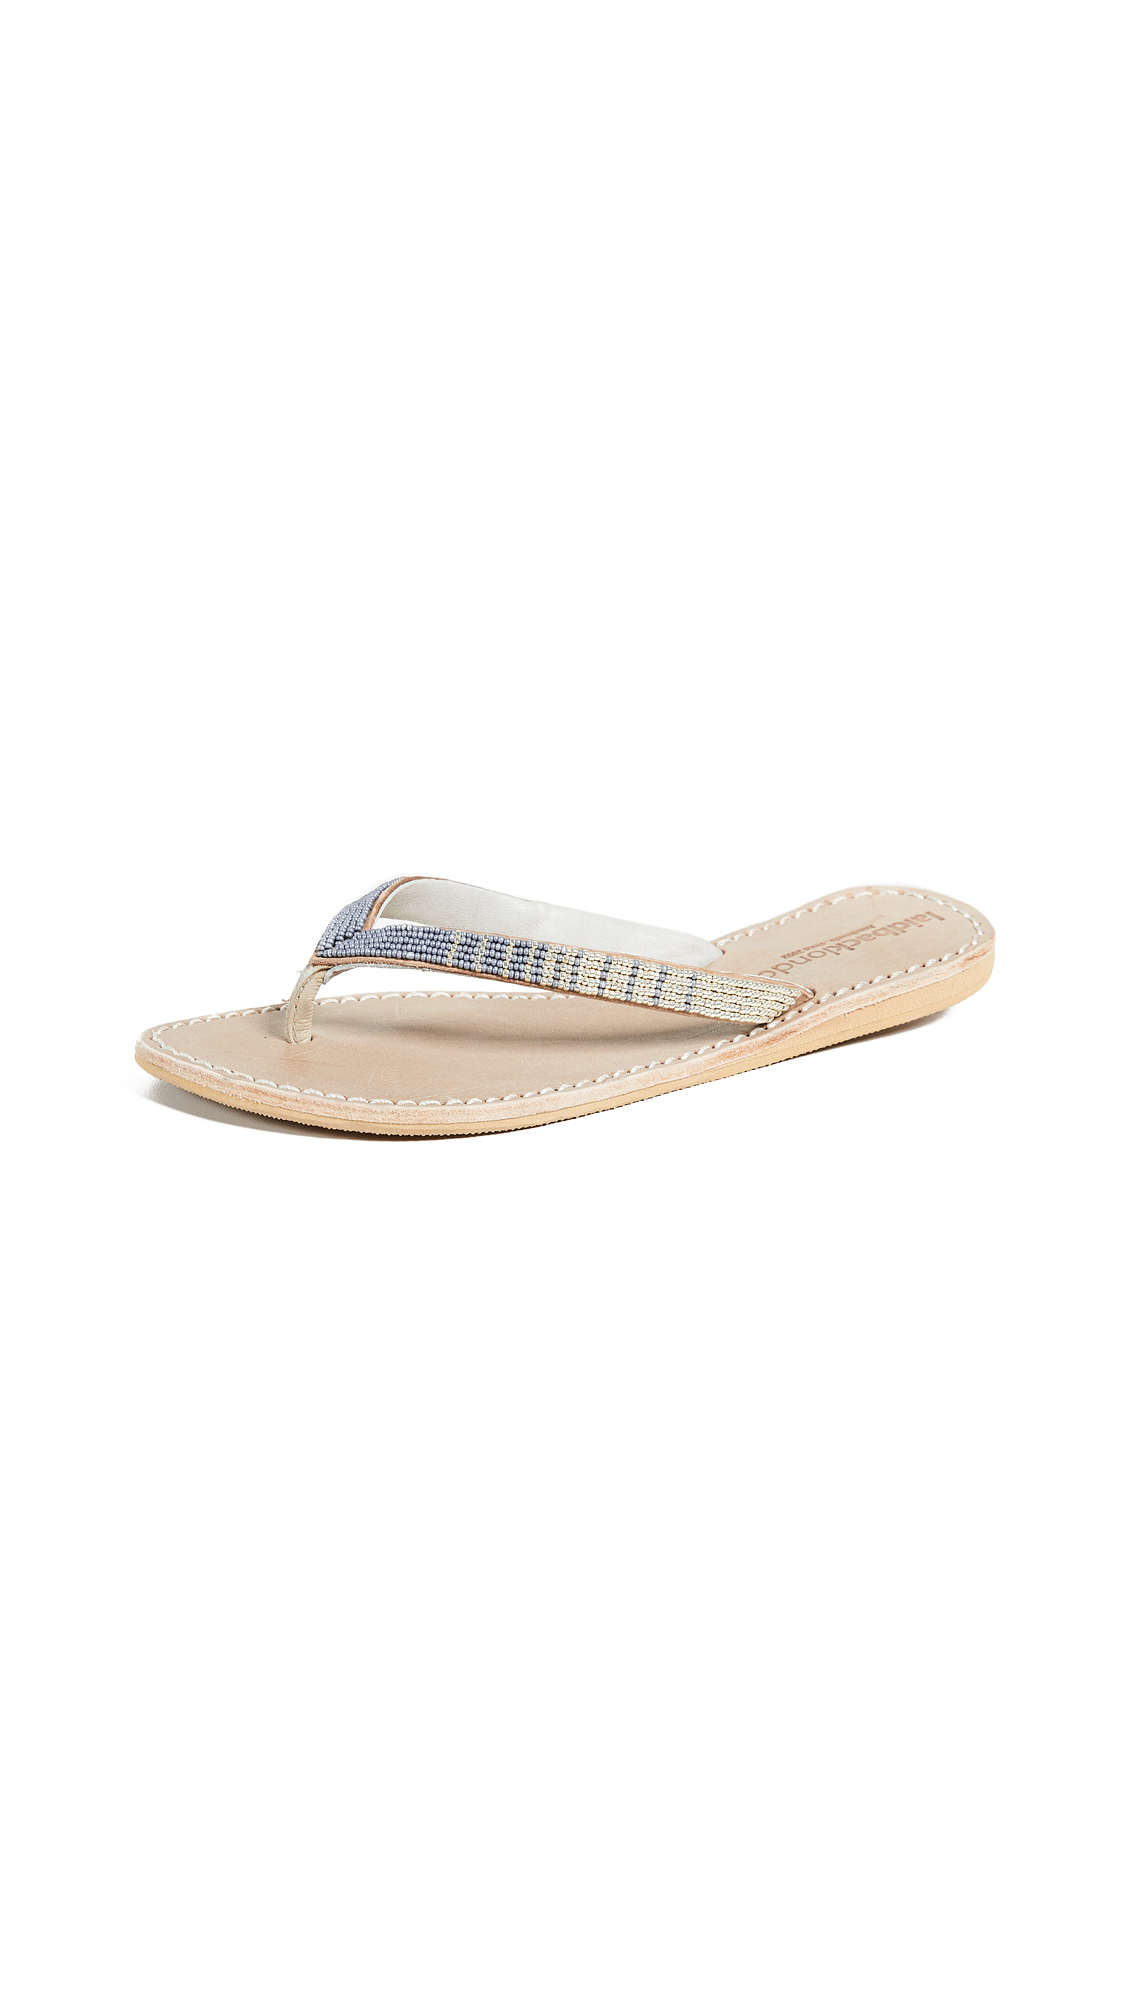 Photo of Laidback London Seri Flip Flops online shoes sales